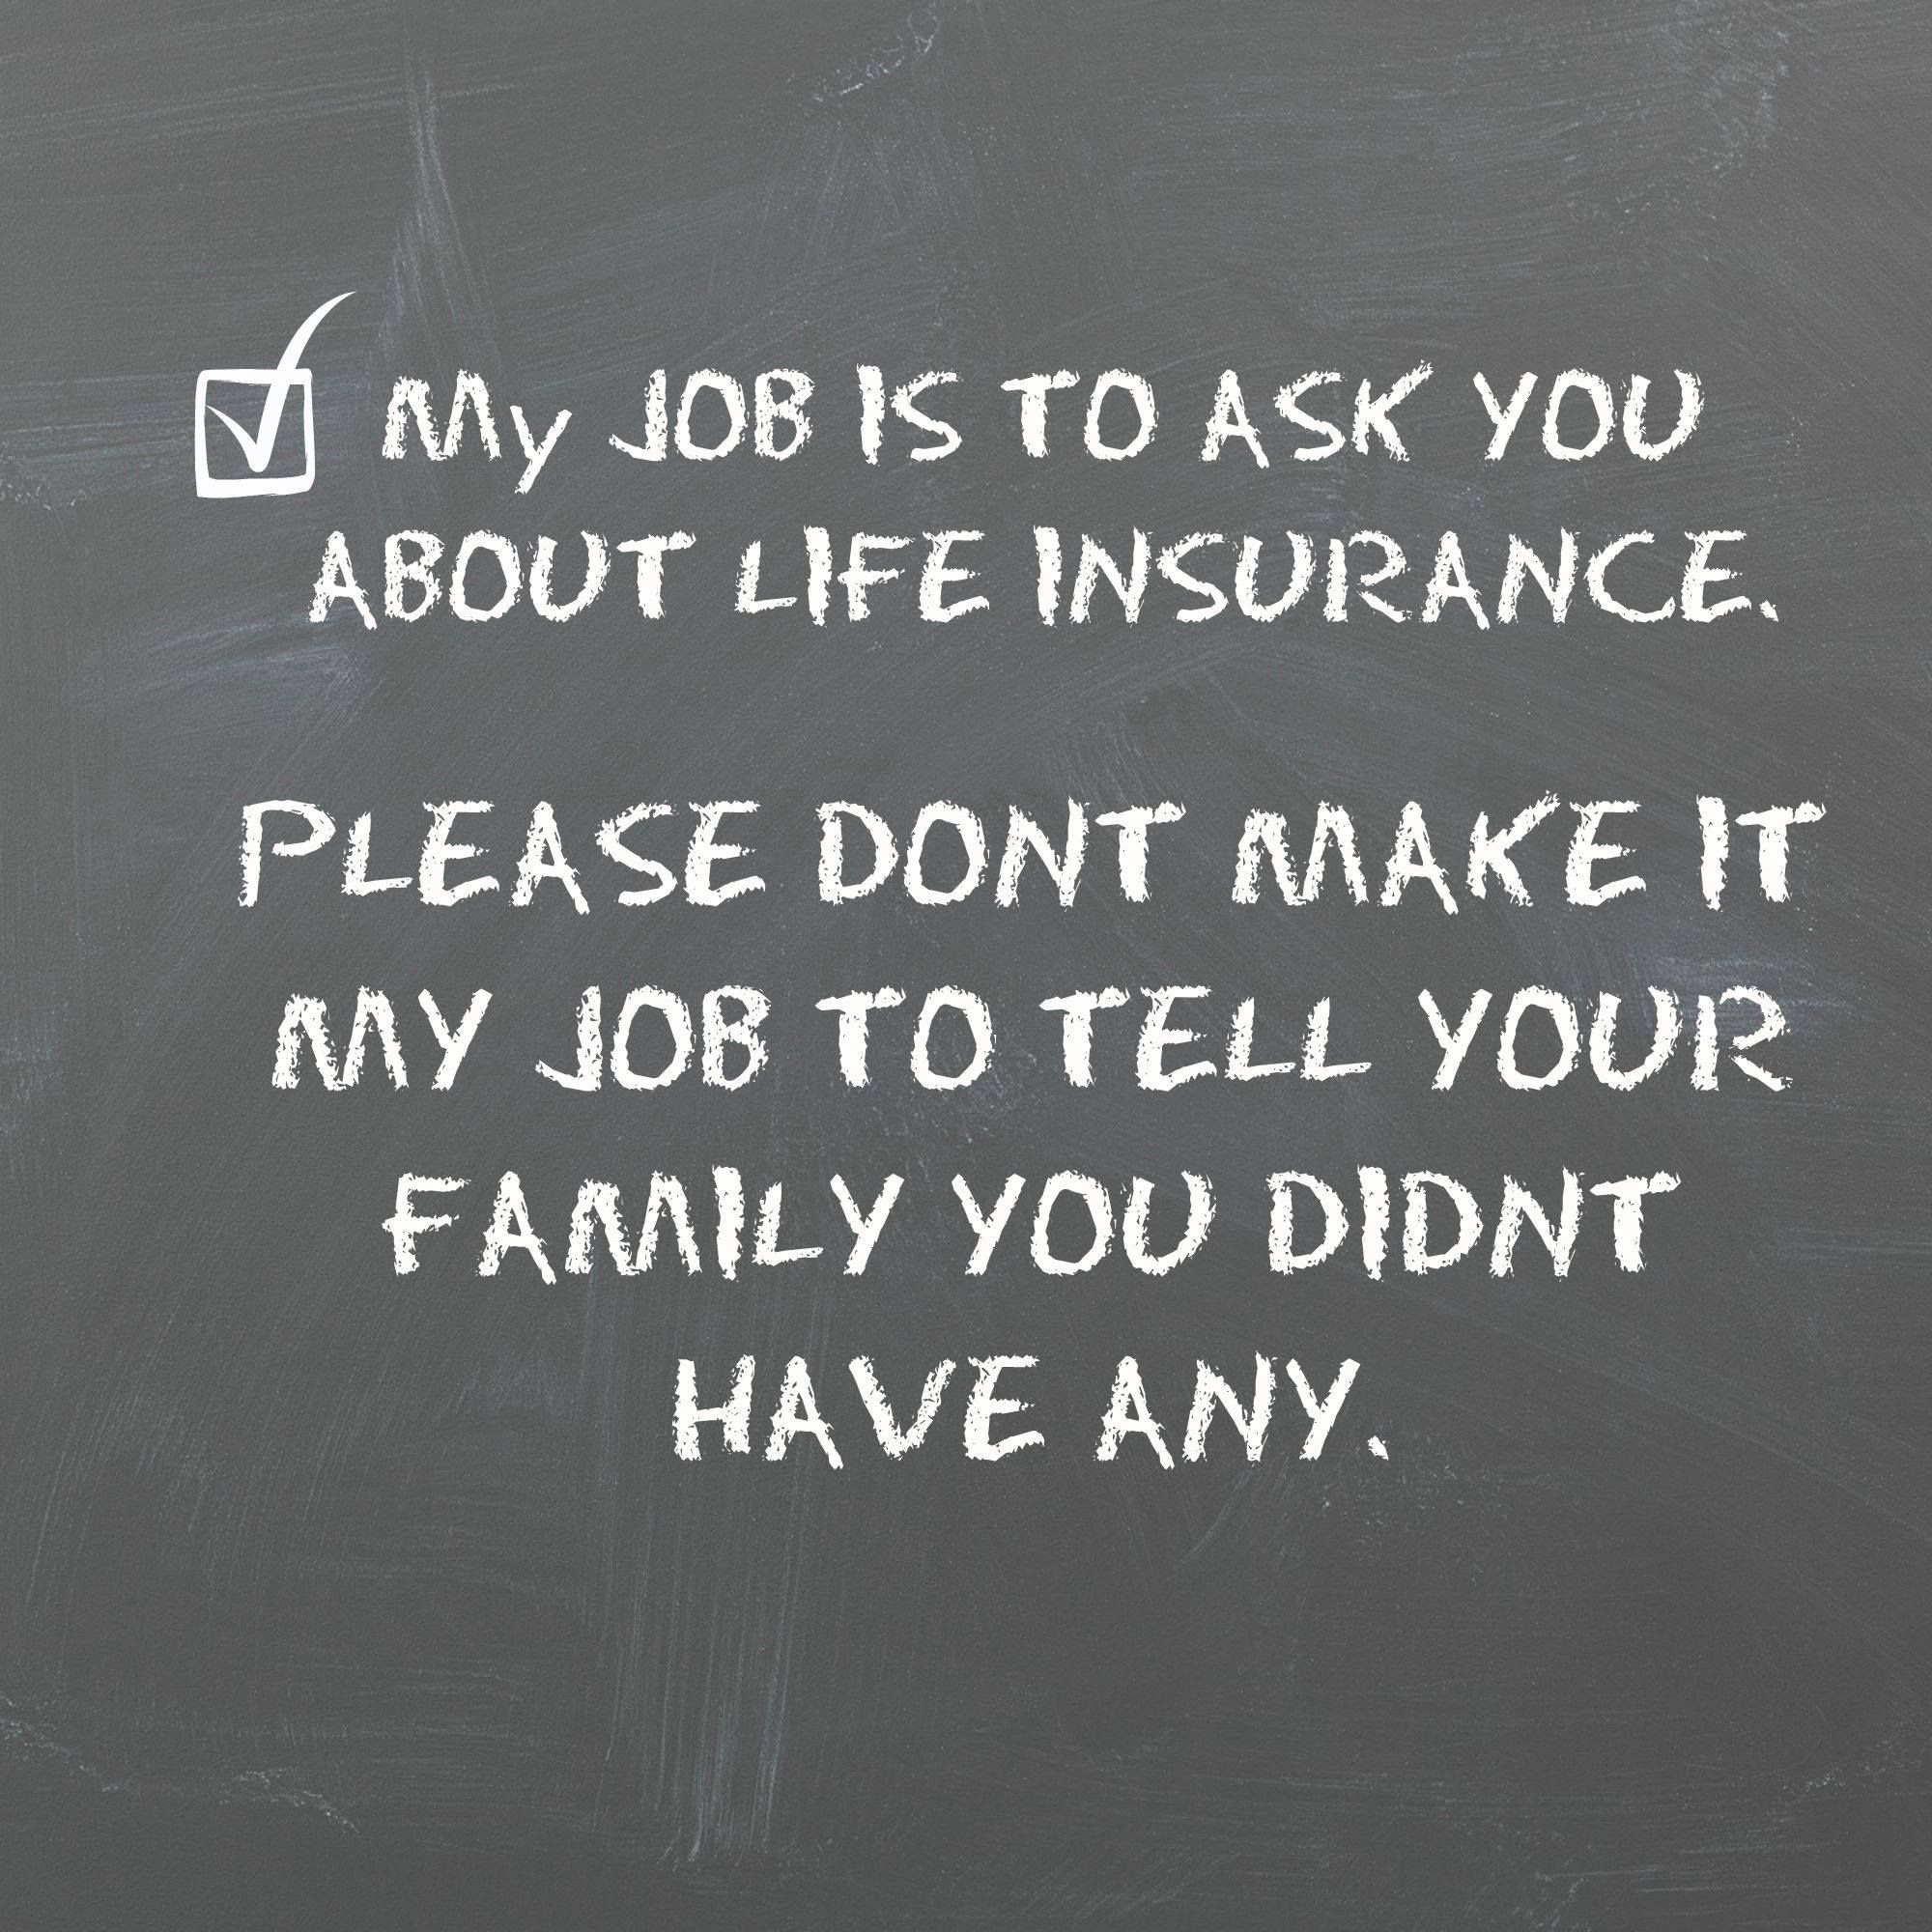 Life Insurance Quote Mesmerizing Call Us For Any #lifeinsurance Questions That You Have At 330225